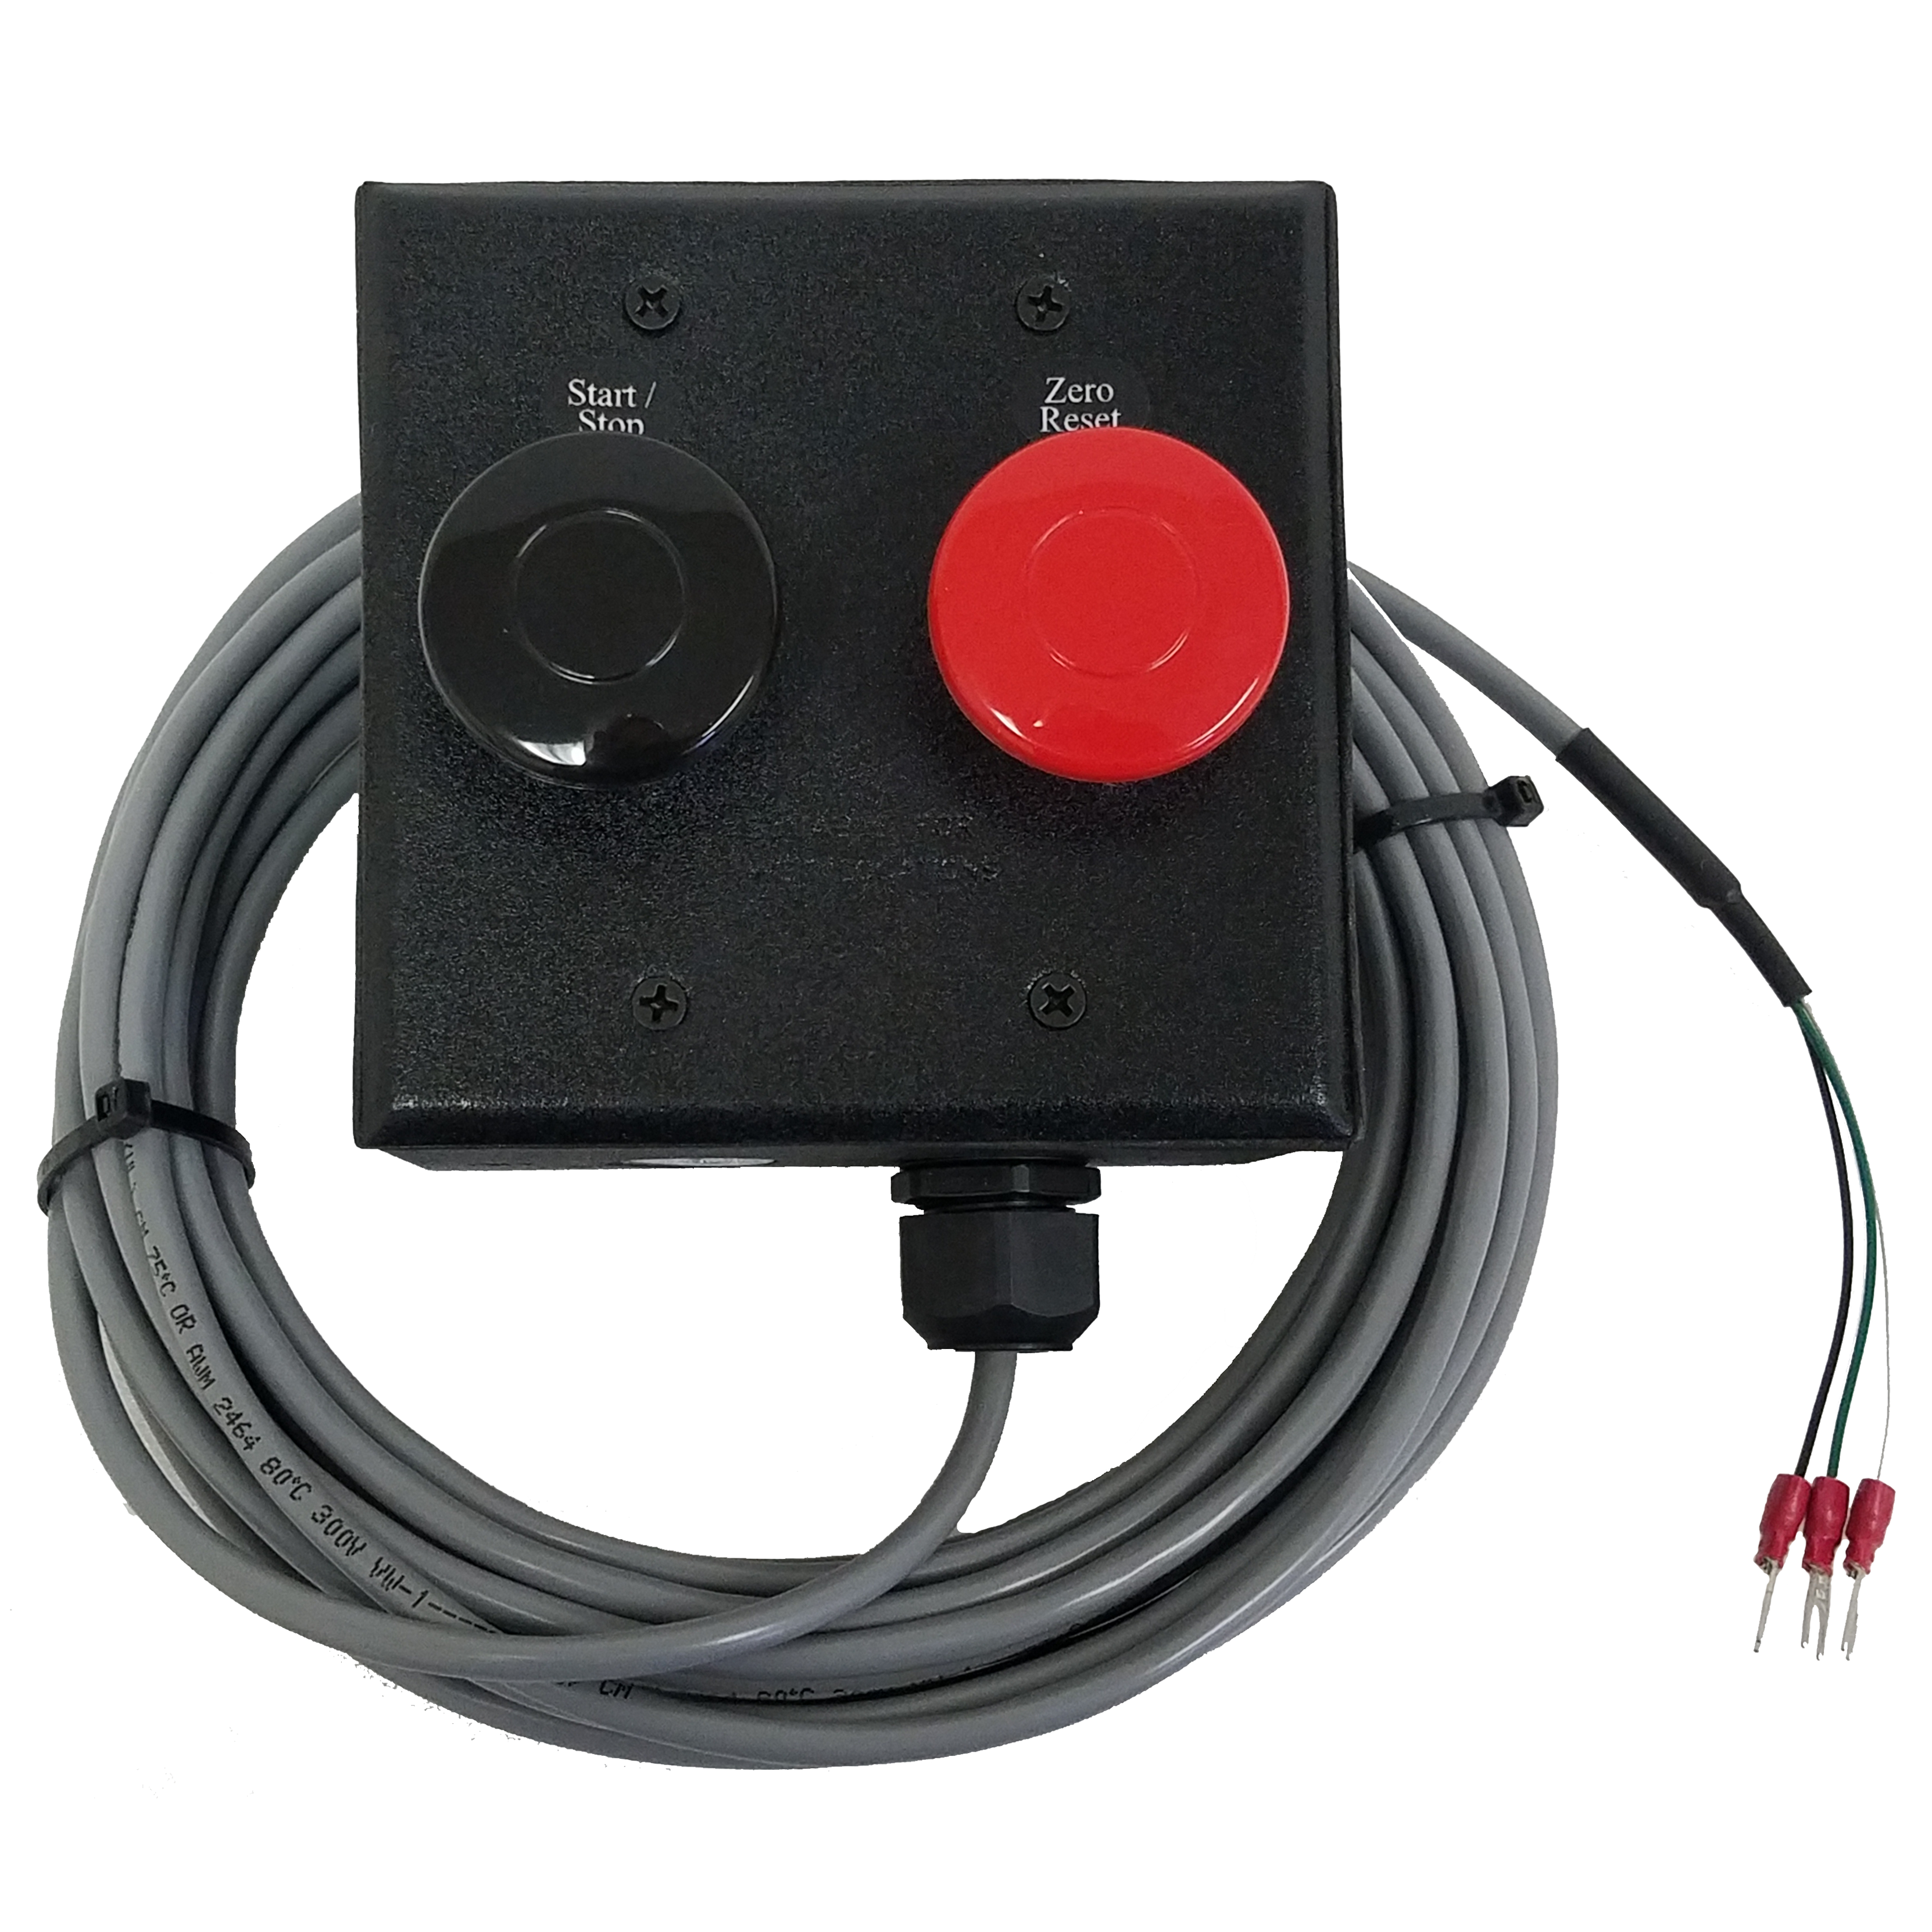 (SW-2-HD-RED-BLK) Heavy Duty Momentary Switches with 40mm Actuator, Enclosure, Cabling